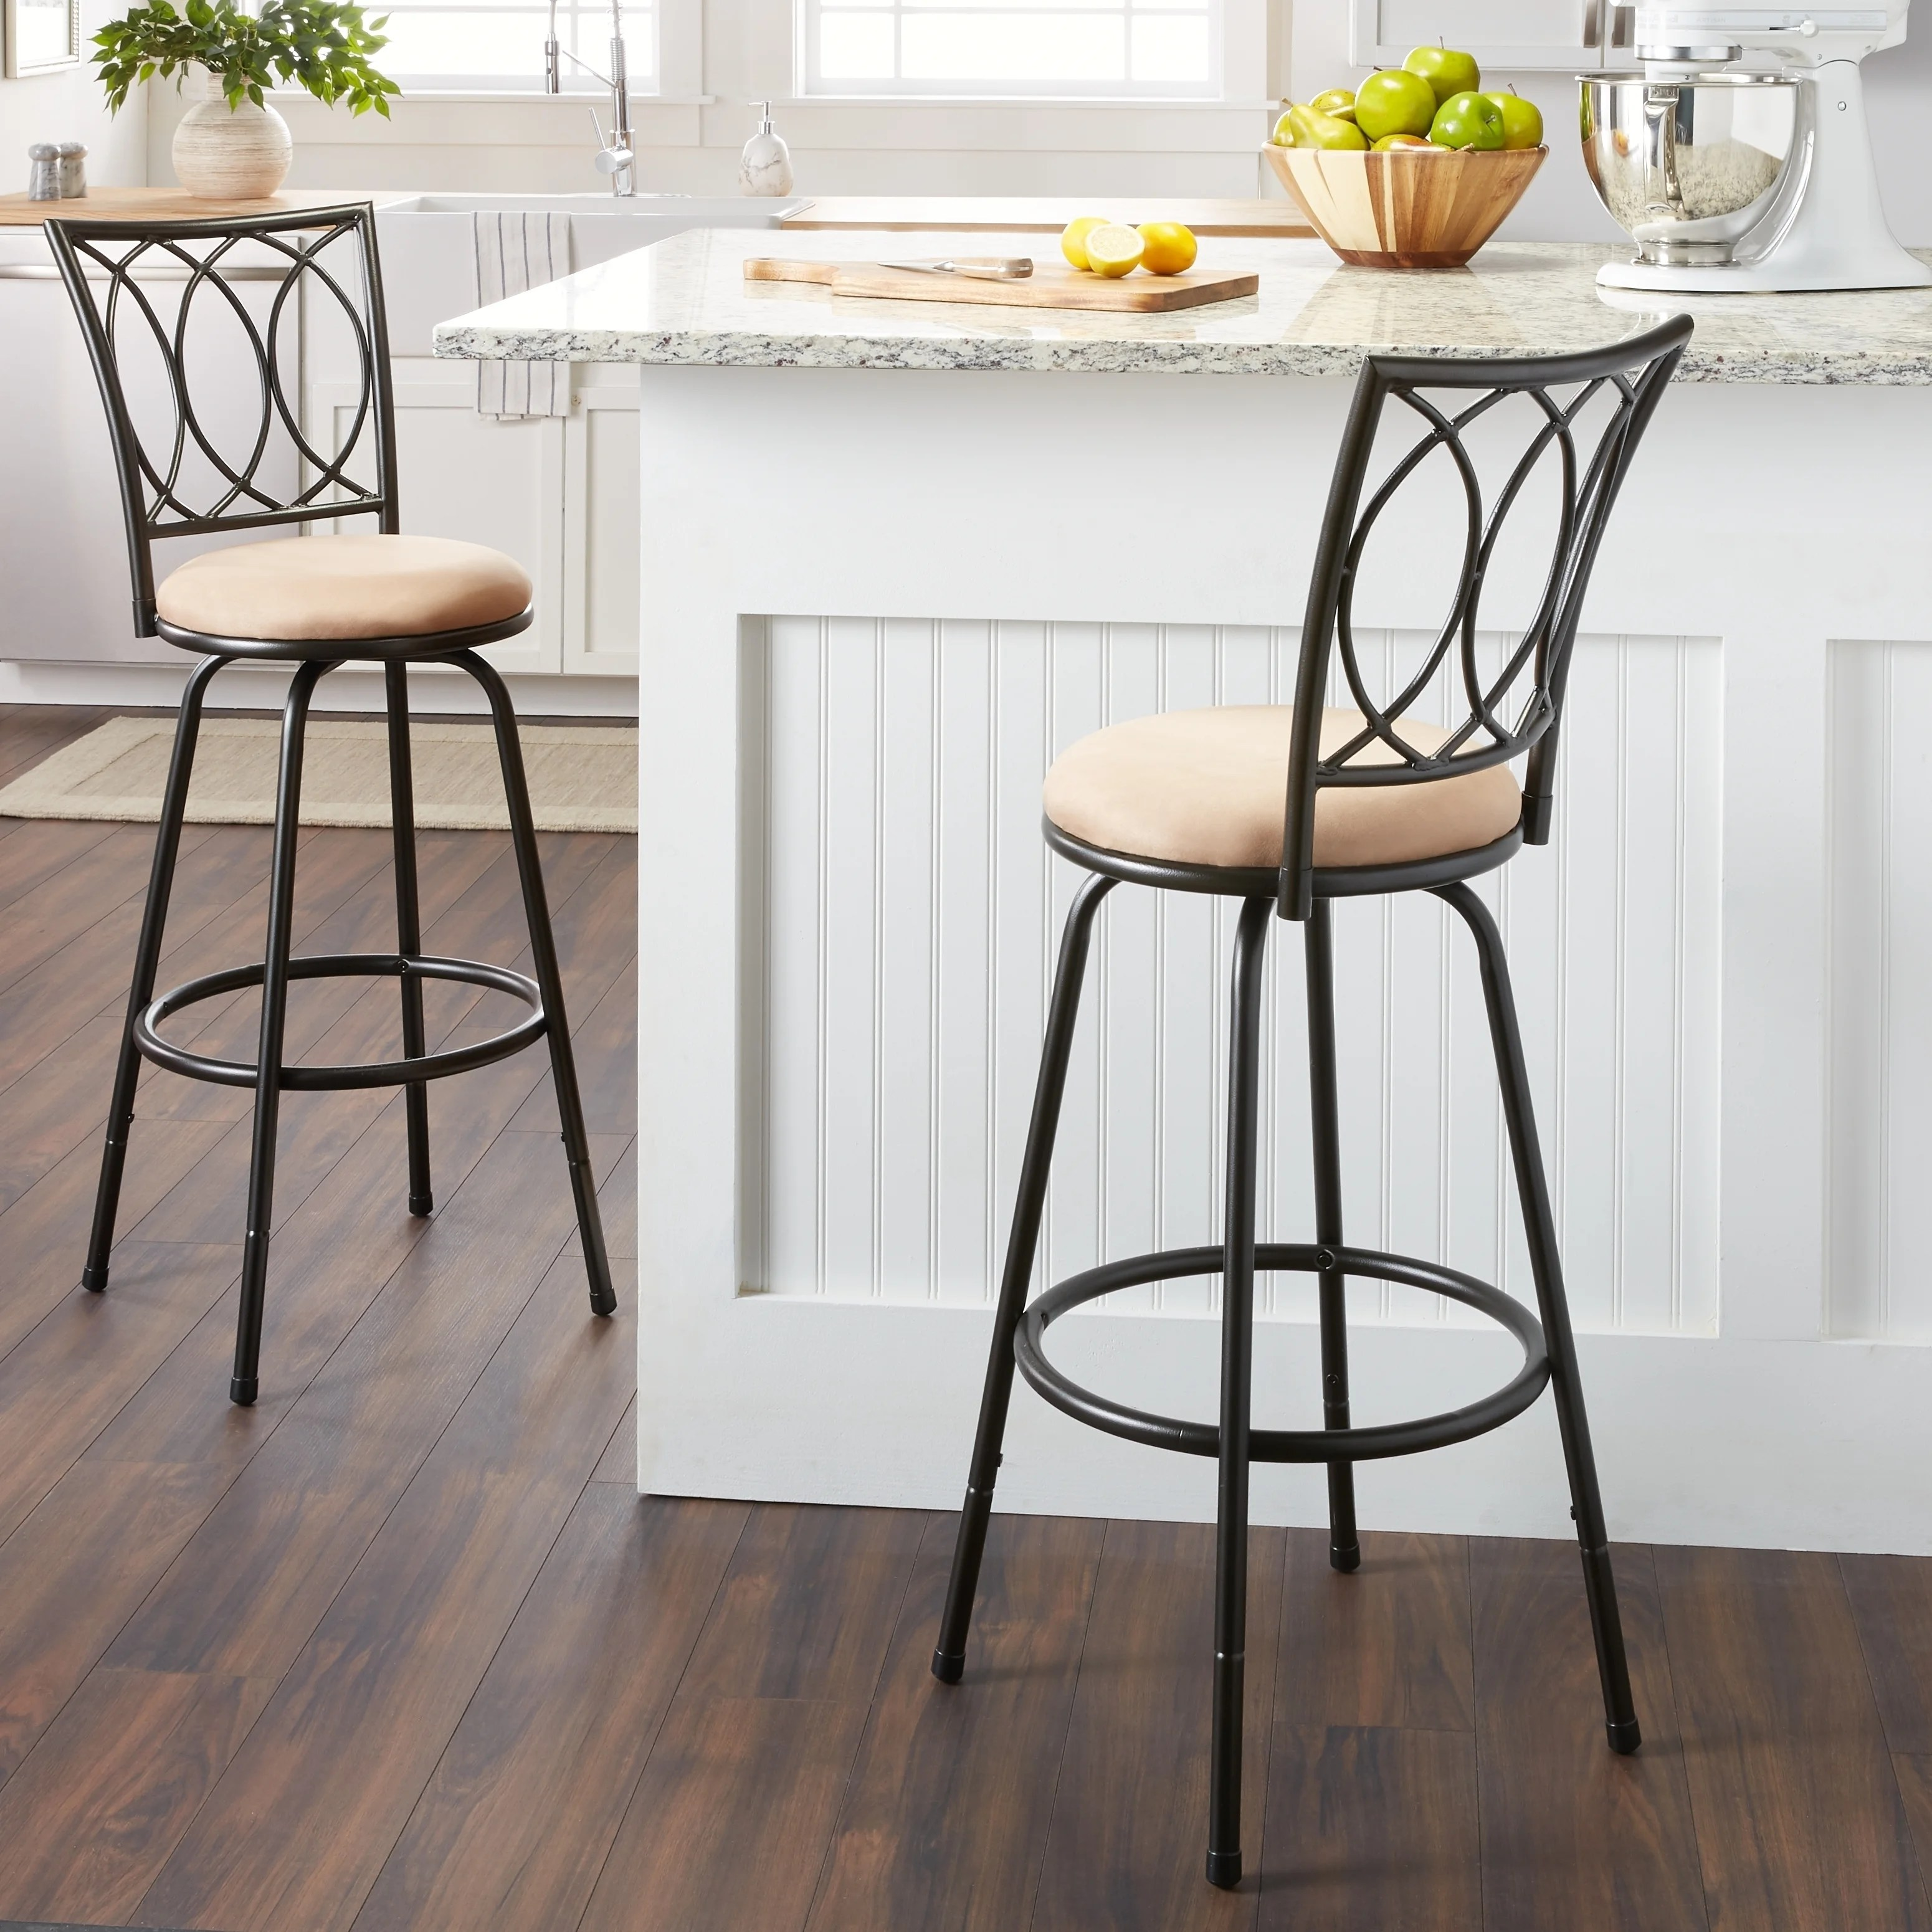 Kitchen Bar Stools On Sale Buy Bronze Finish Counter Bar Stools Online At Overstock Our